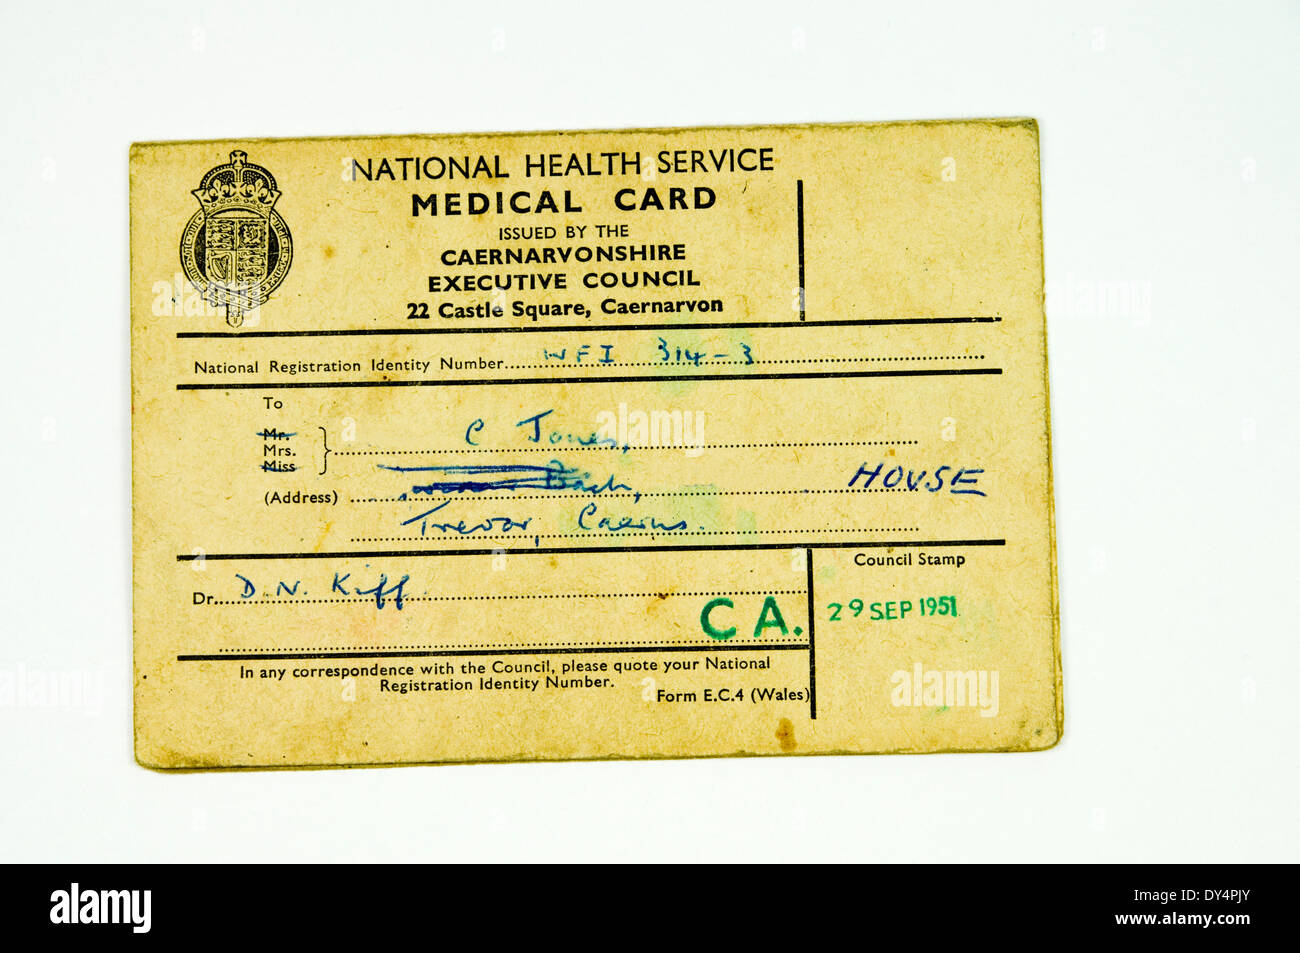 Old National Health Service Medical Card. - Stock Image